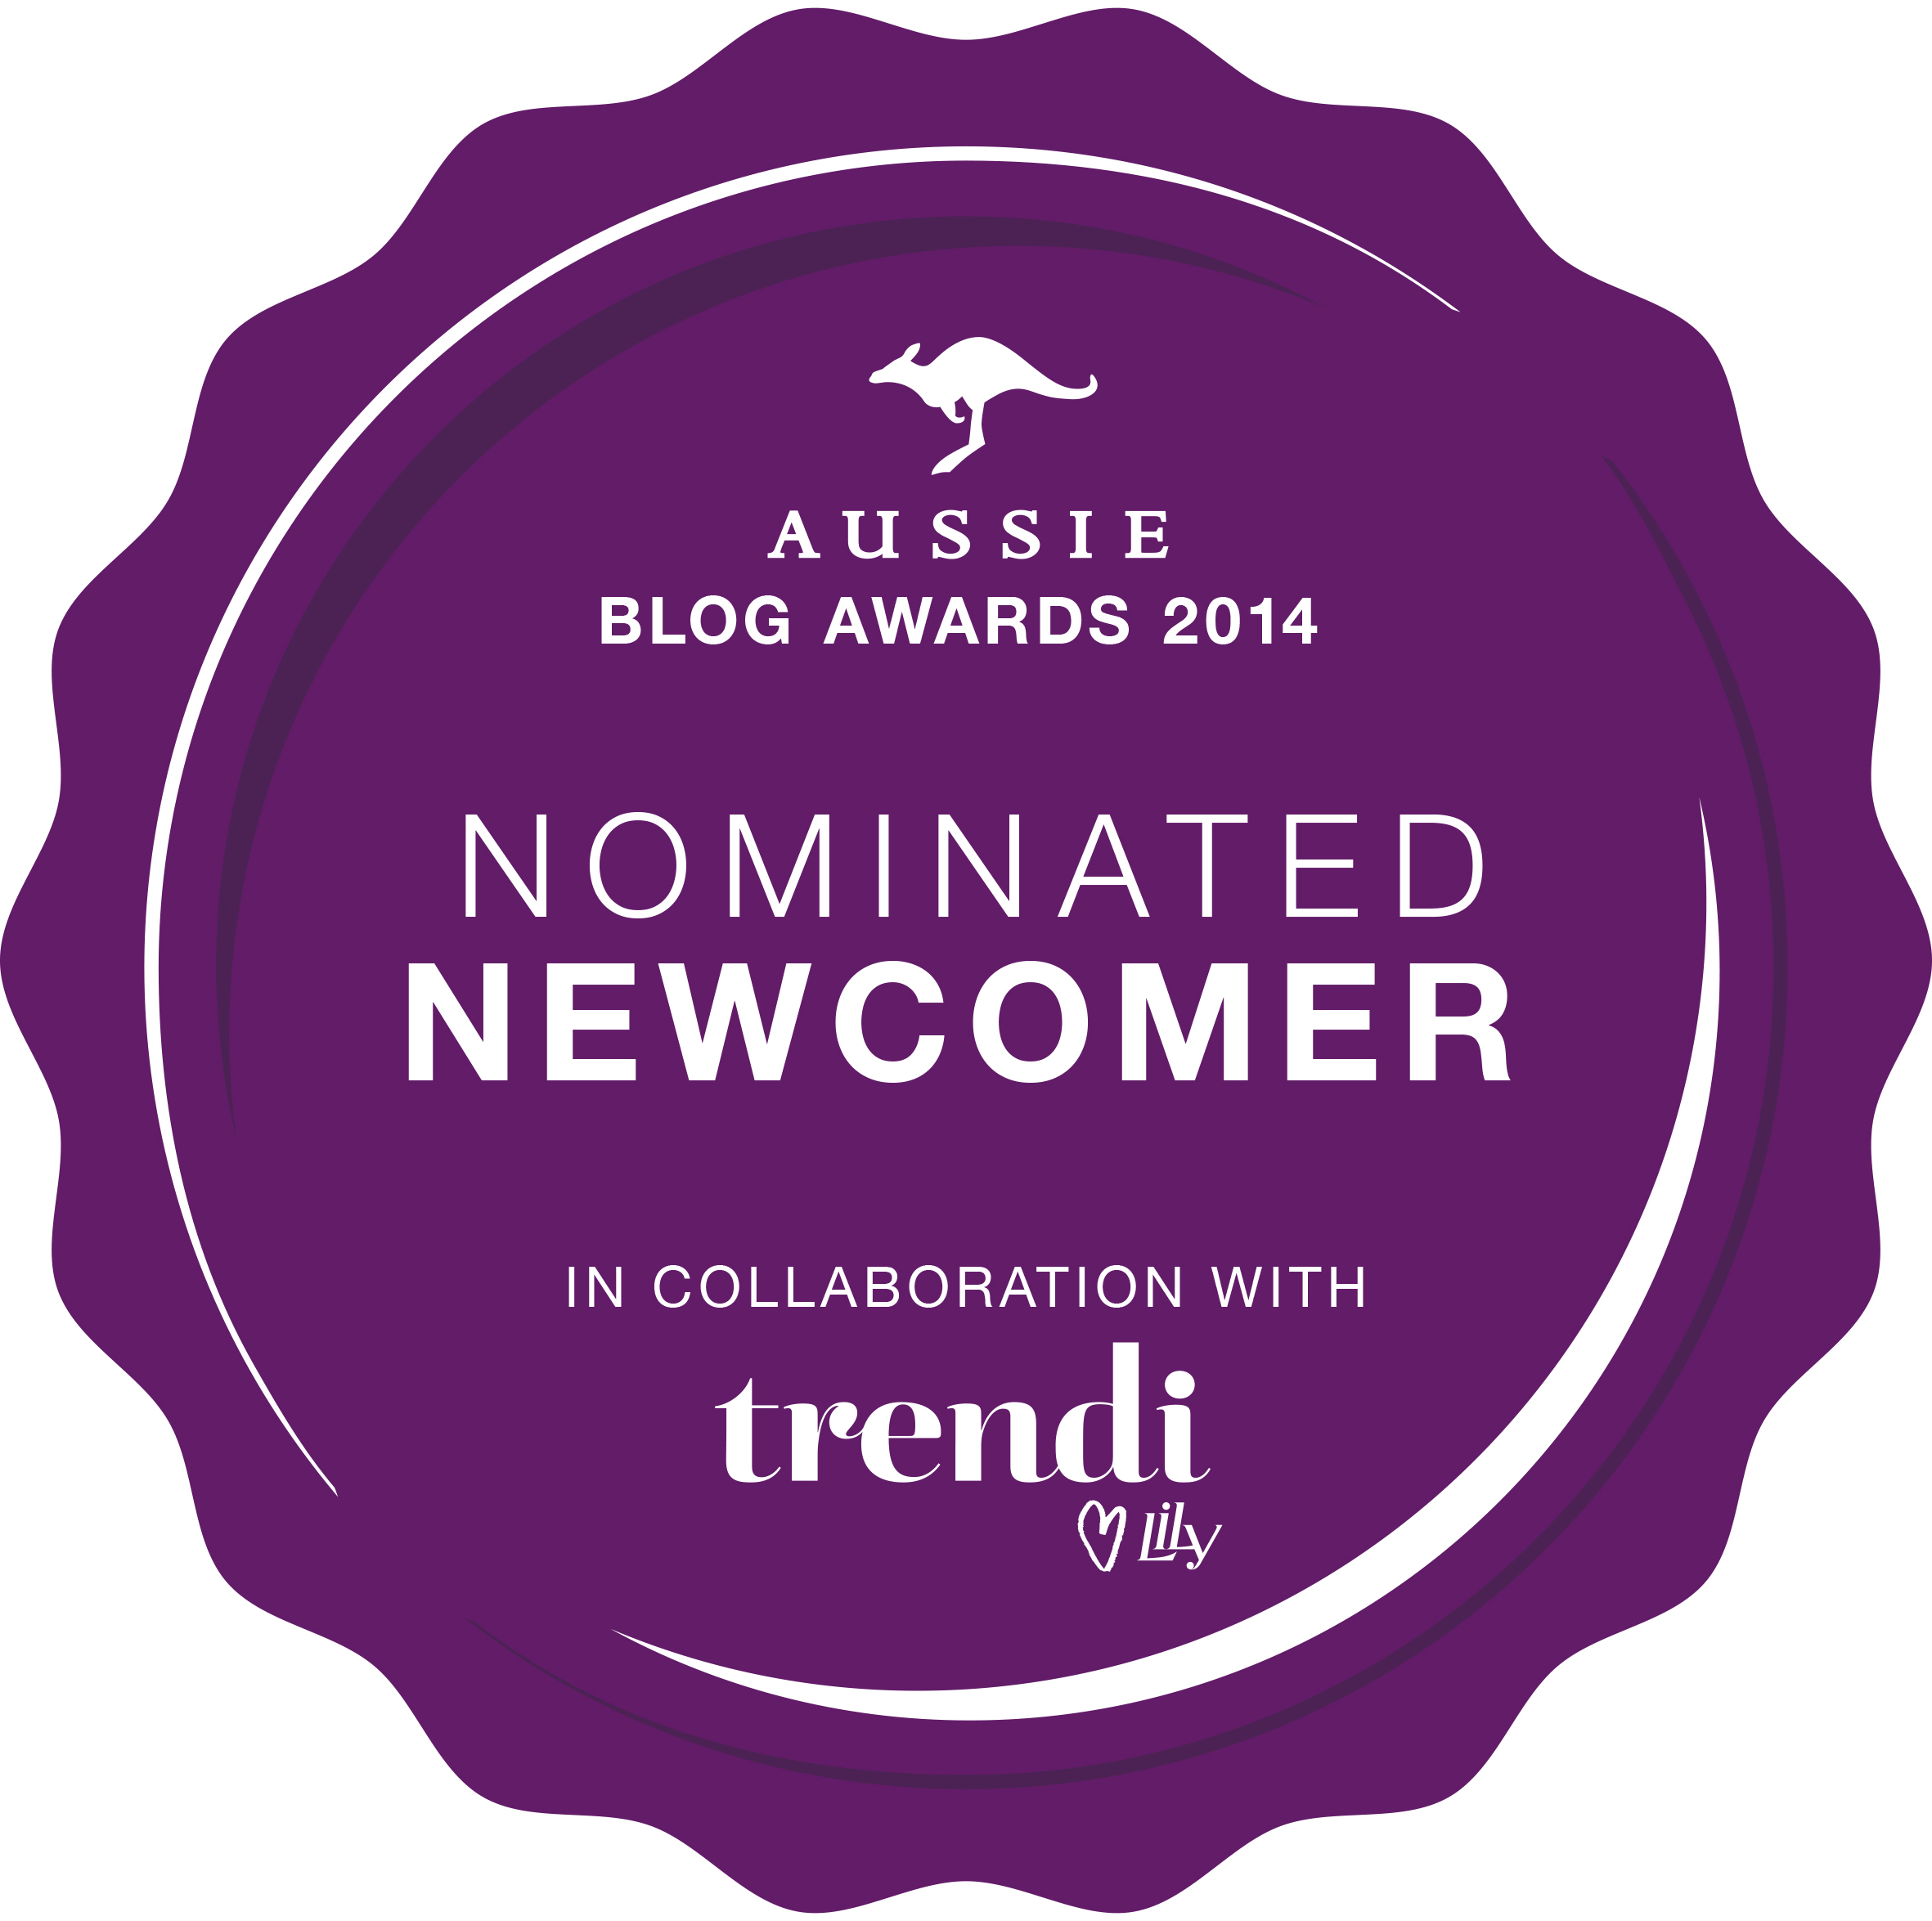 uusi_aussie_blogawards_nominee_newcomer_2014.jpg